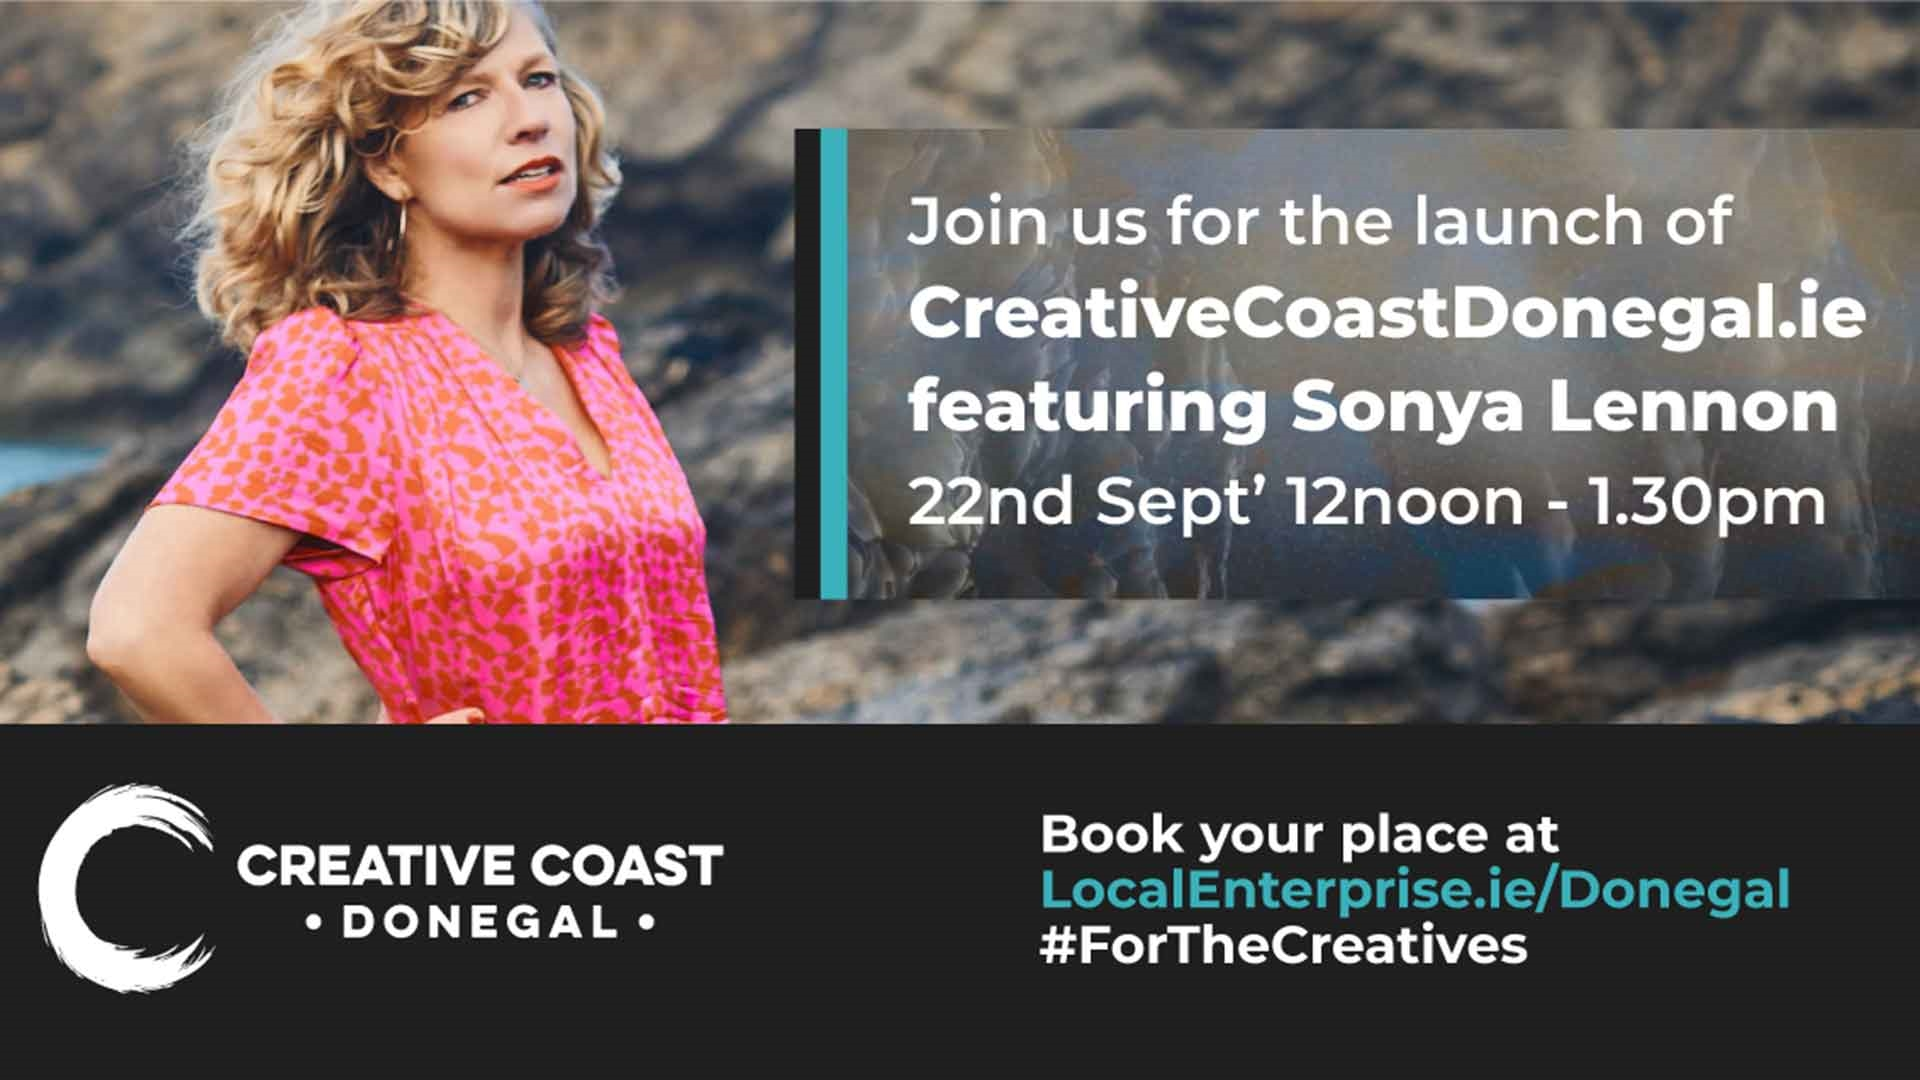 Let's celebrate Donegal's creative industries and businesses!